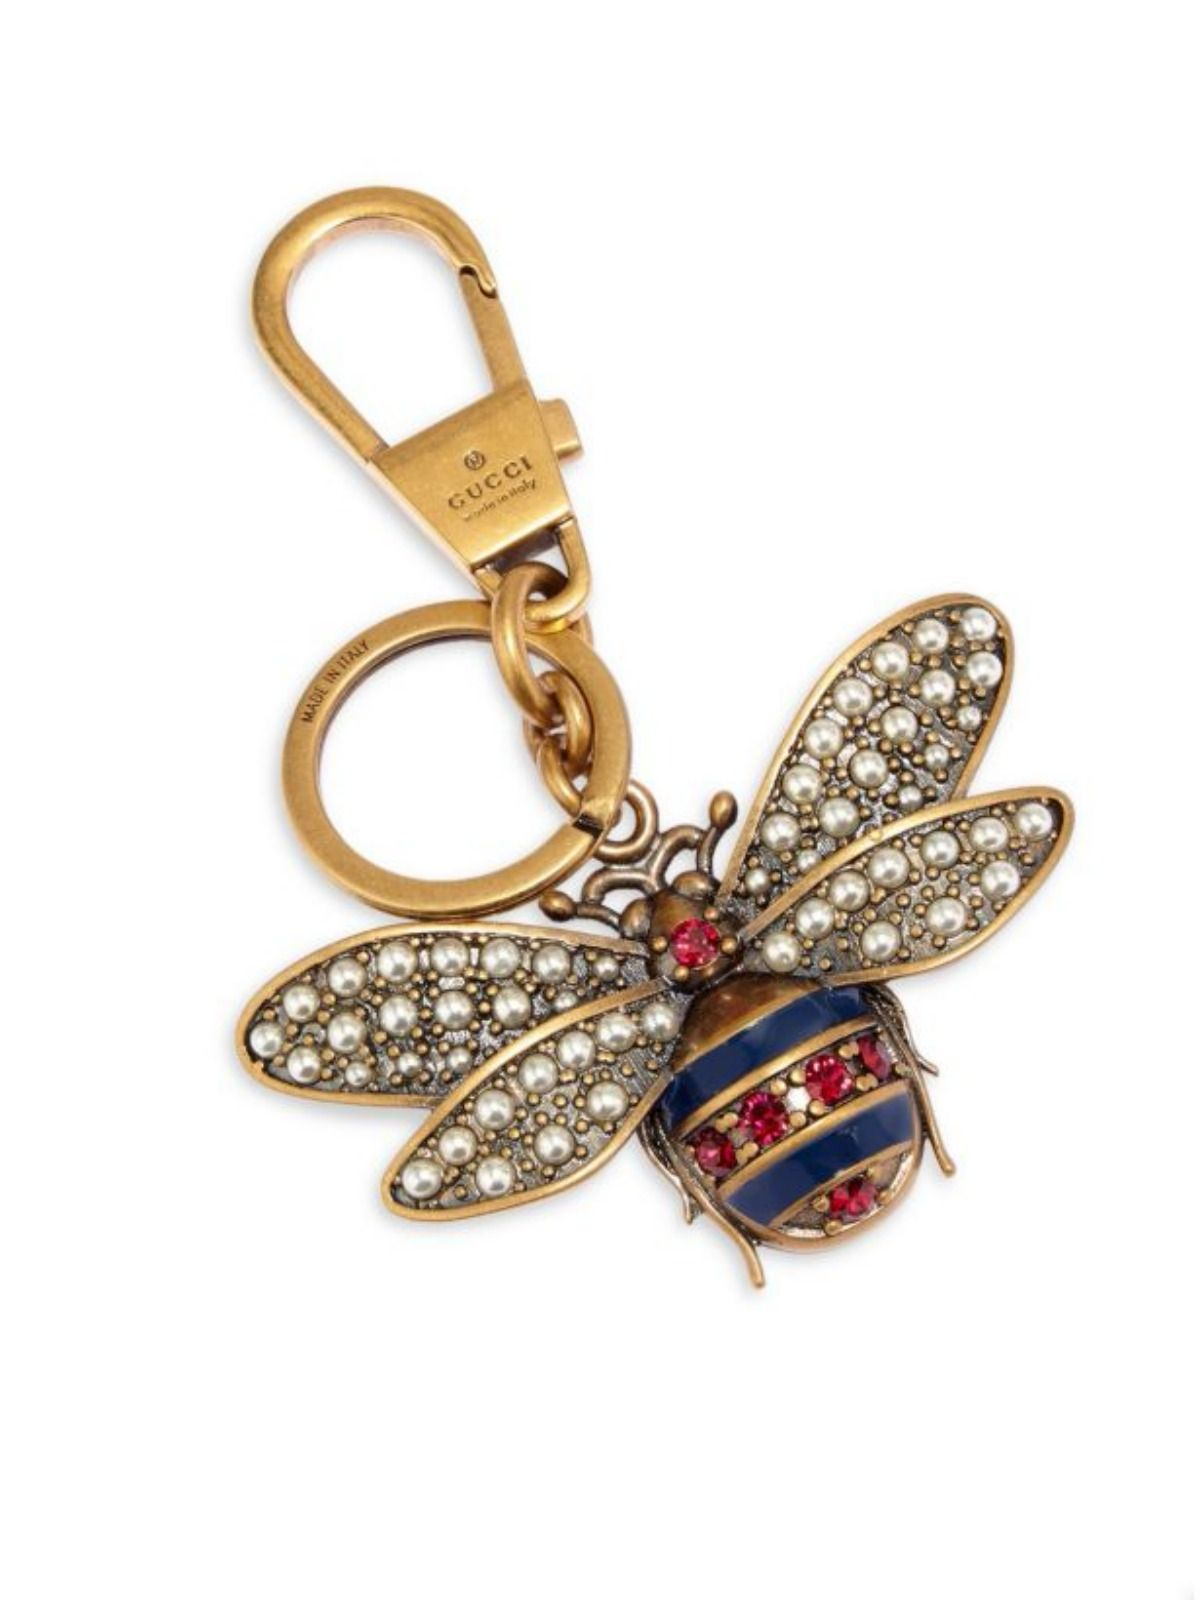 30d2052c9e4b Gucci Queen Margaret Embellished Bee Keychain #ad #bee | Bees Knees ...